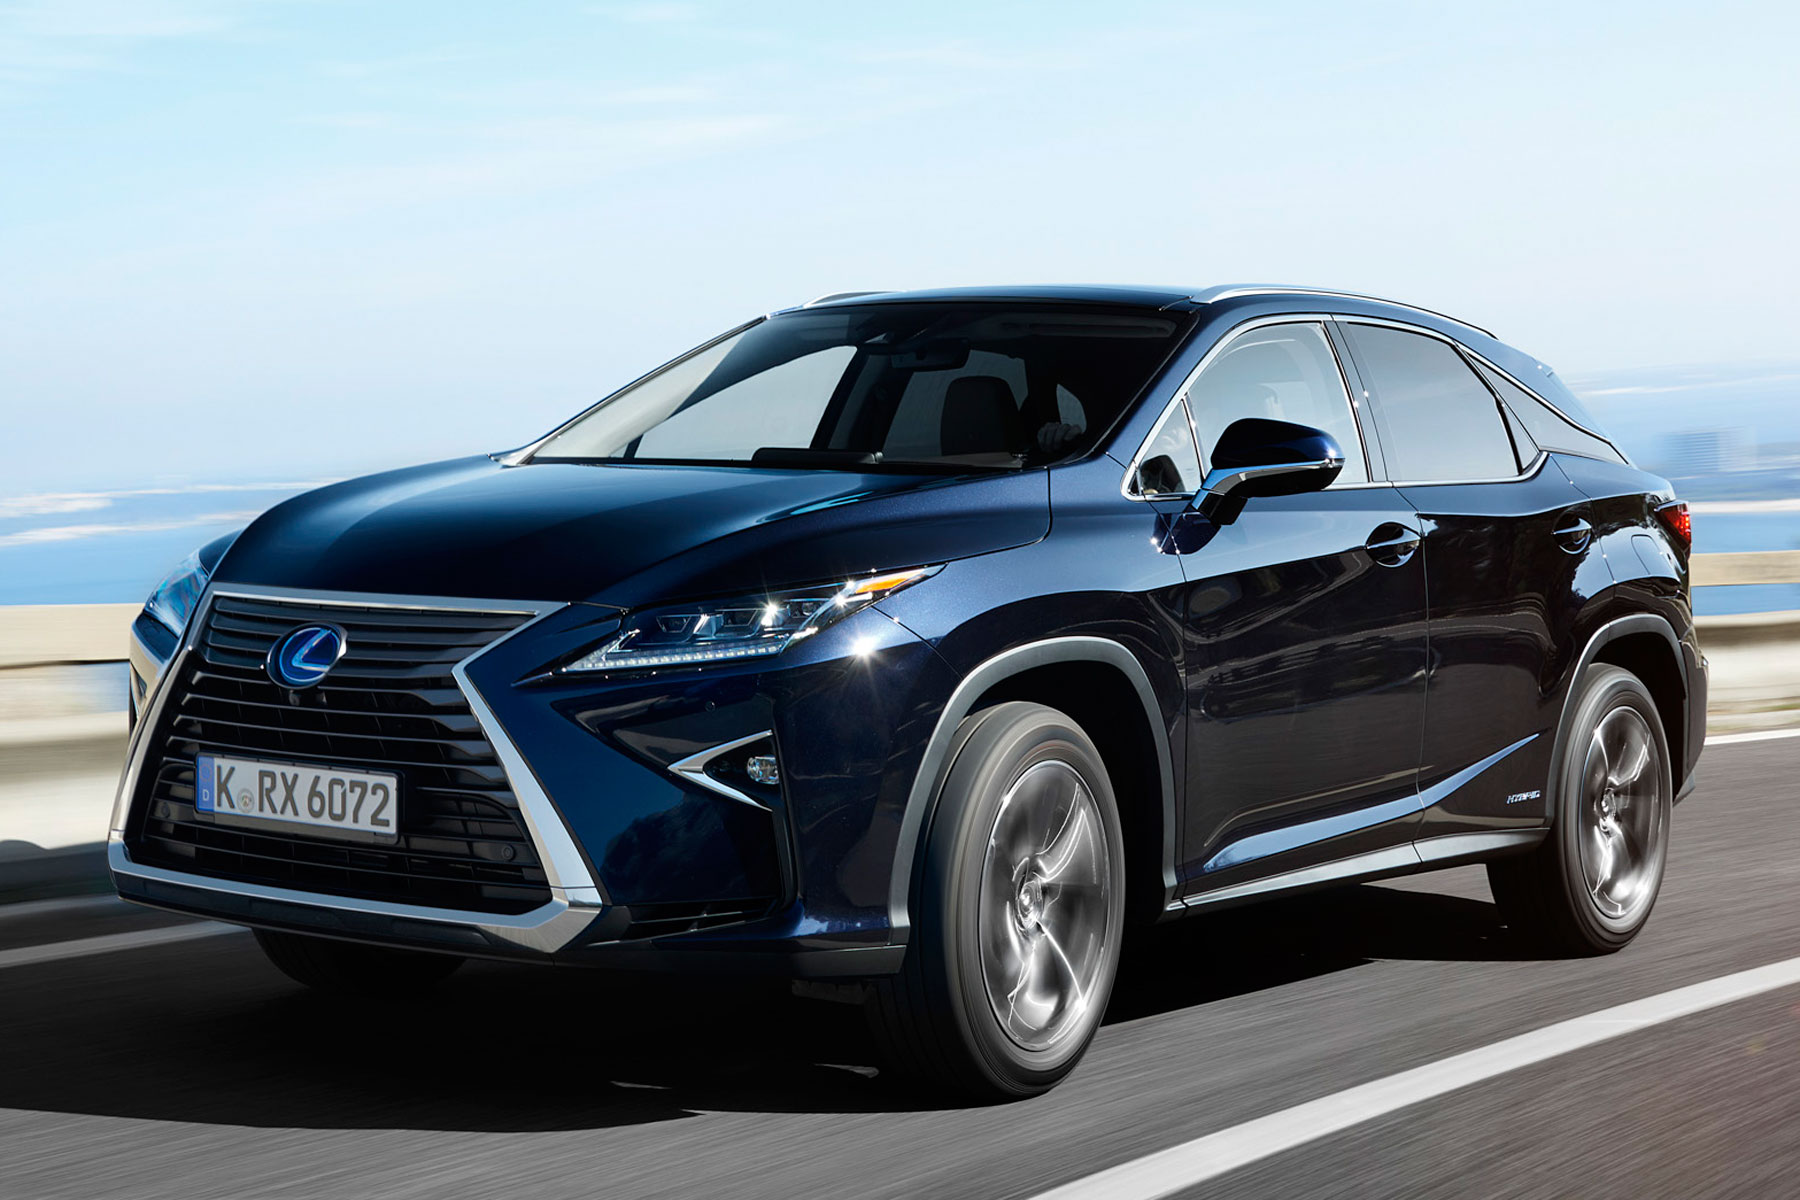 lexus rx review 2015 first drive motoring research. Black Bedroom Furniture Sets. Home Design Ideas